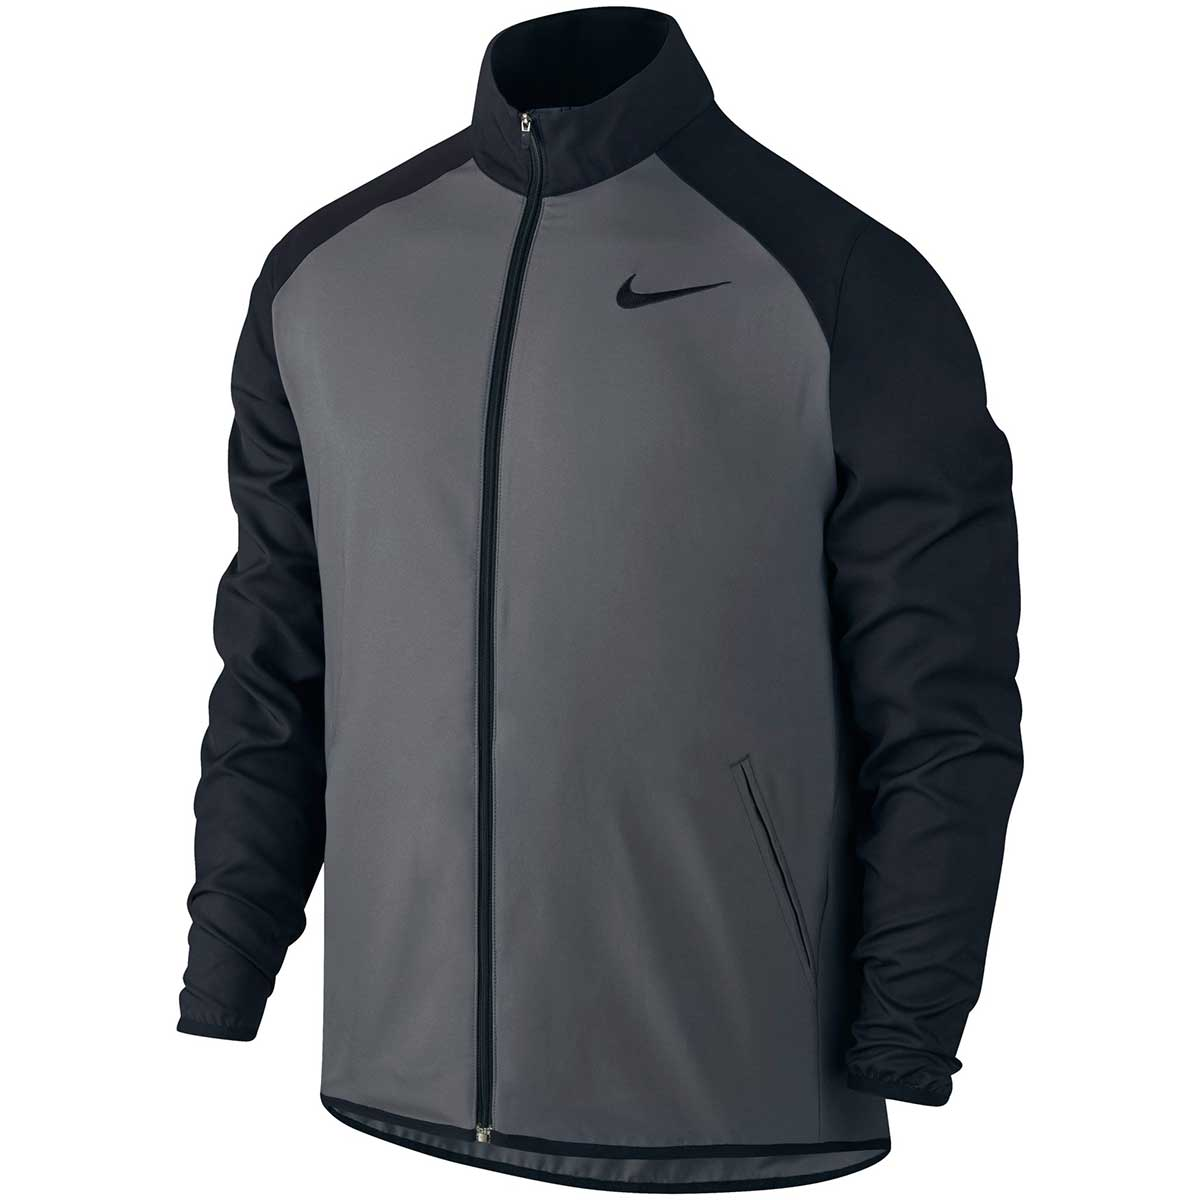 2c4143cfa578 Buy Nike Mens Dry Team Training Jacket (Grey) Online India